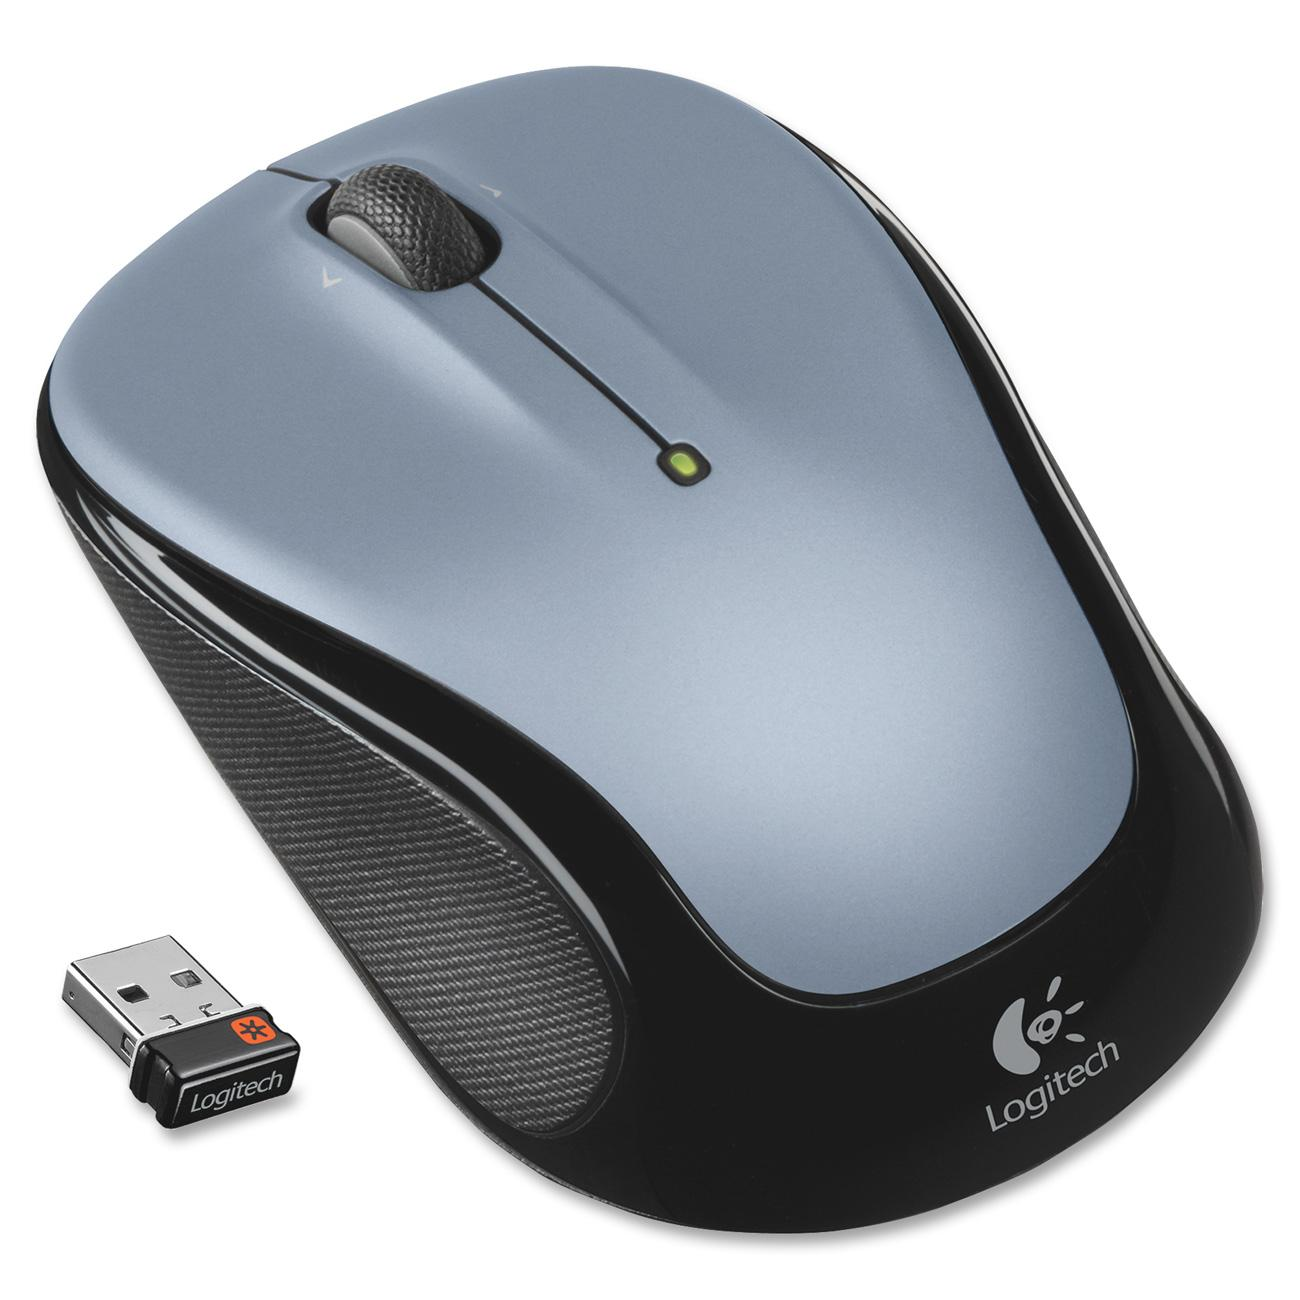 Logitech Wireless Mouse M325 by Logitech